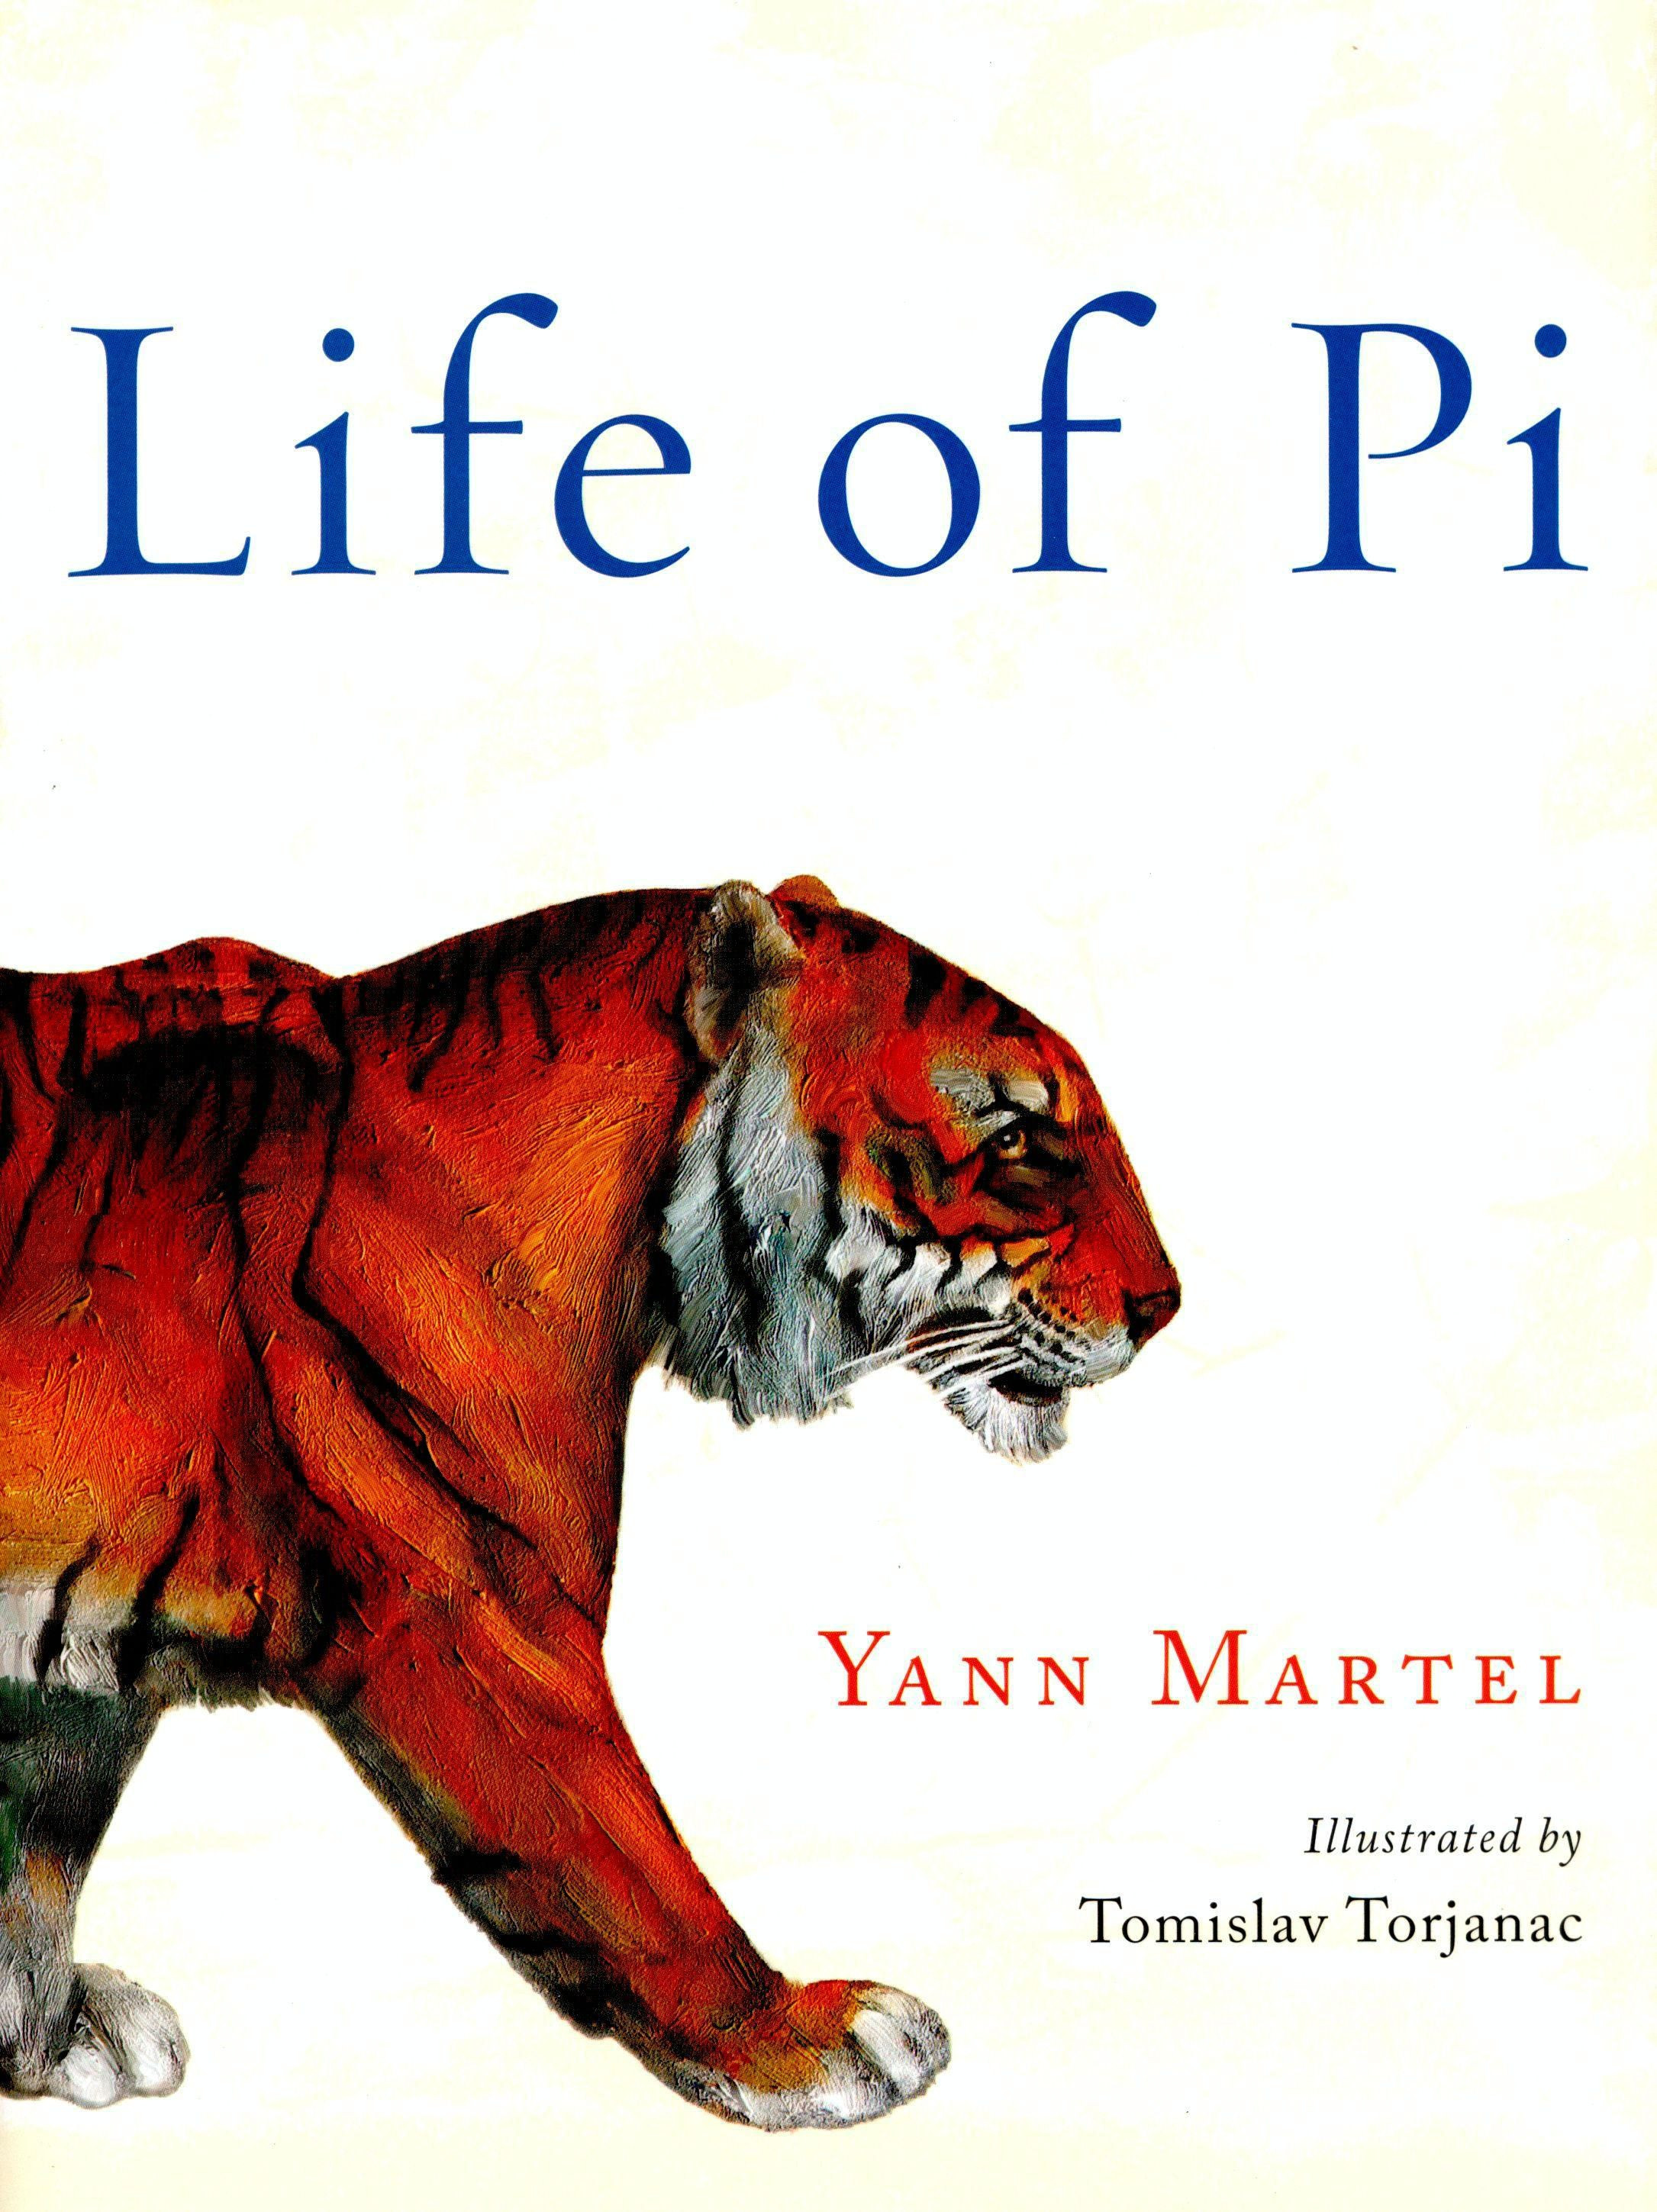 life of pi yann martel essay Life of pi in 2001, yann martel authored the fantasy adventure novel, life of pl it is a story about how the narrator and his family are transporting some of the animals from their zoo, when suddenly the ship sinks, and we see how the narrator succeeds in saving the three old adult bengal tiger, richard parker.